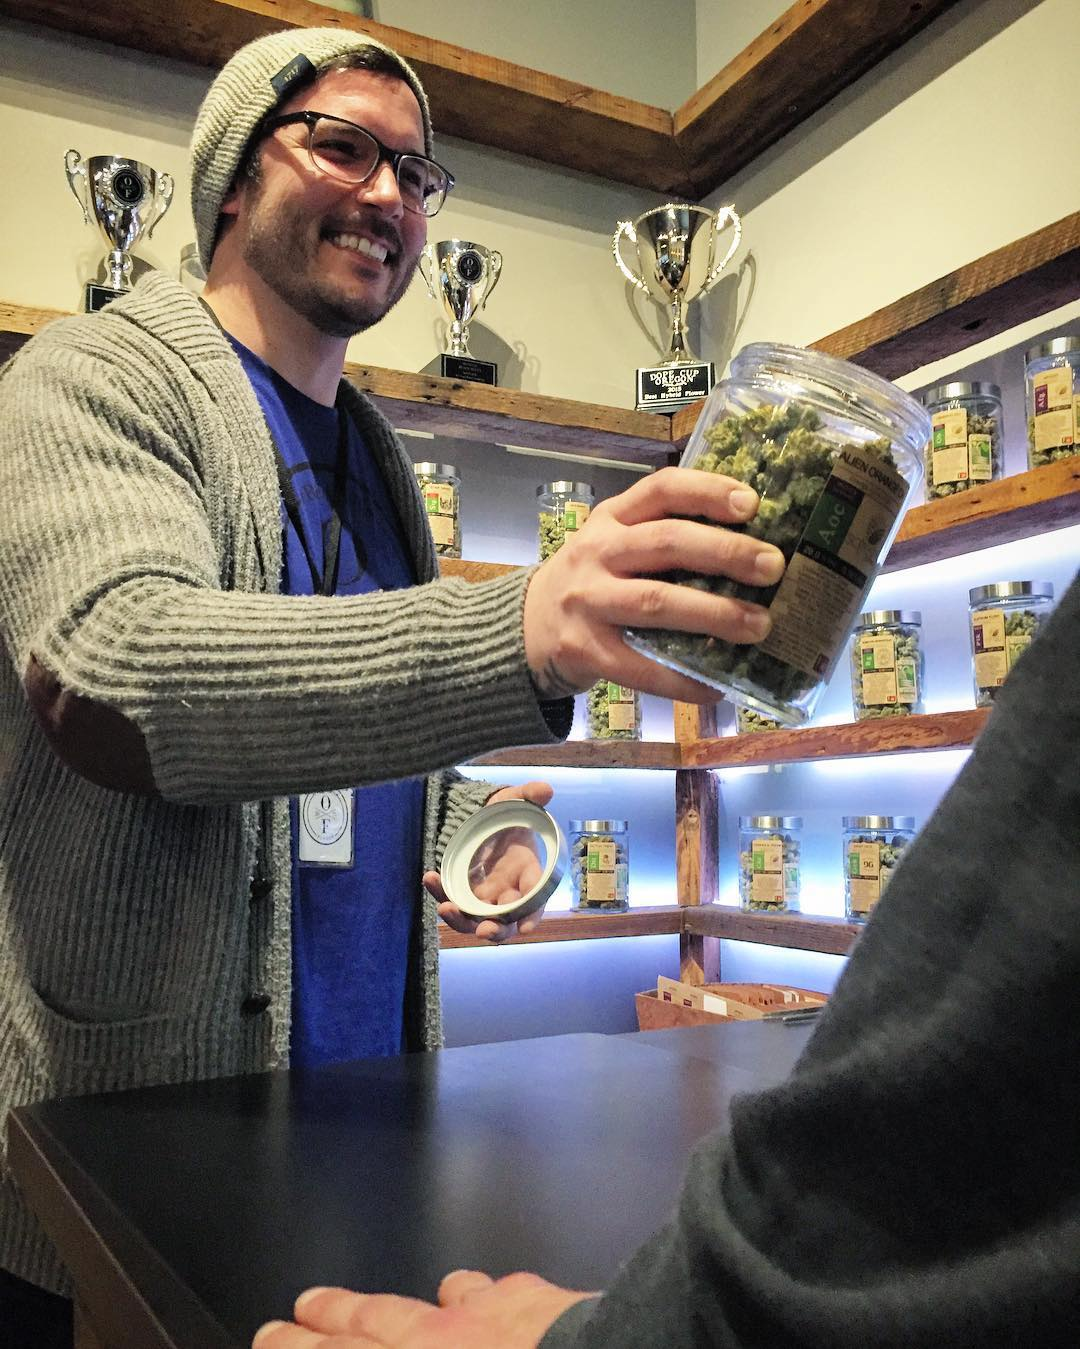 Oregon's Finest Customer Service; a staff member holds a jar of marijuana buds up for a customer to inspect